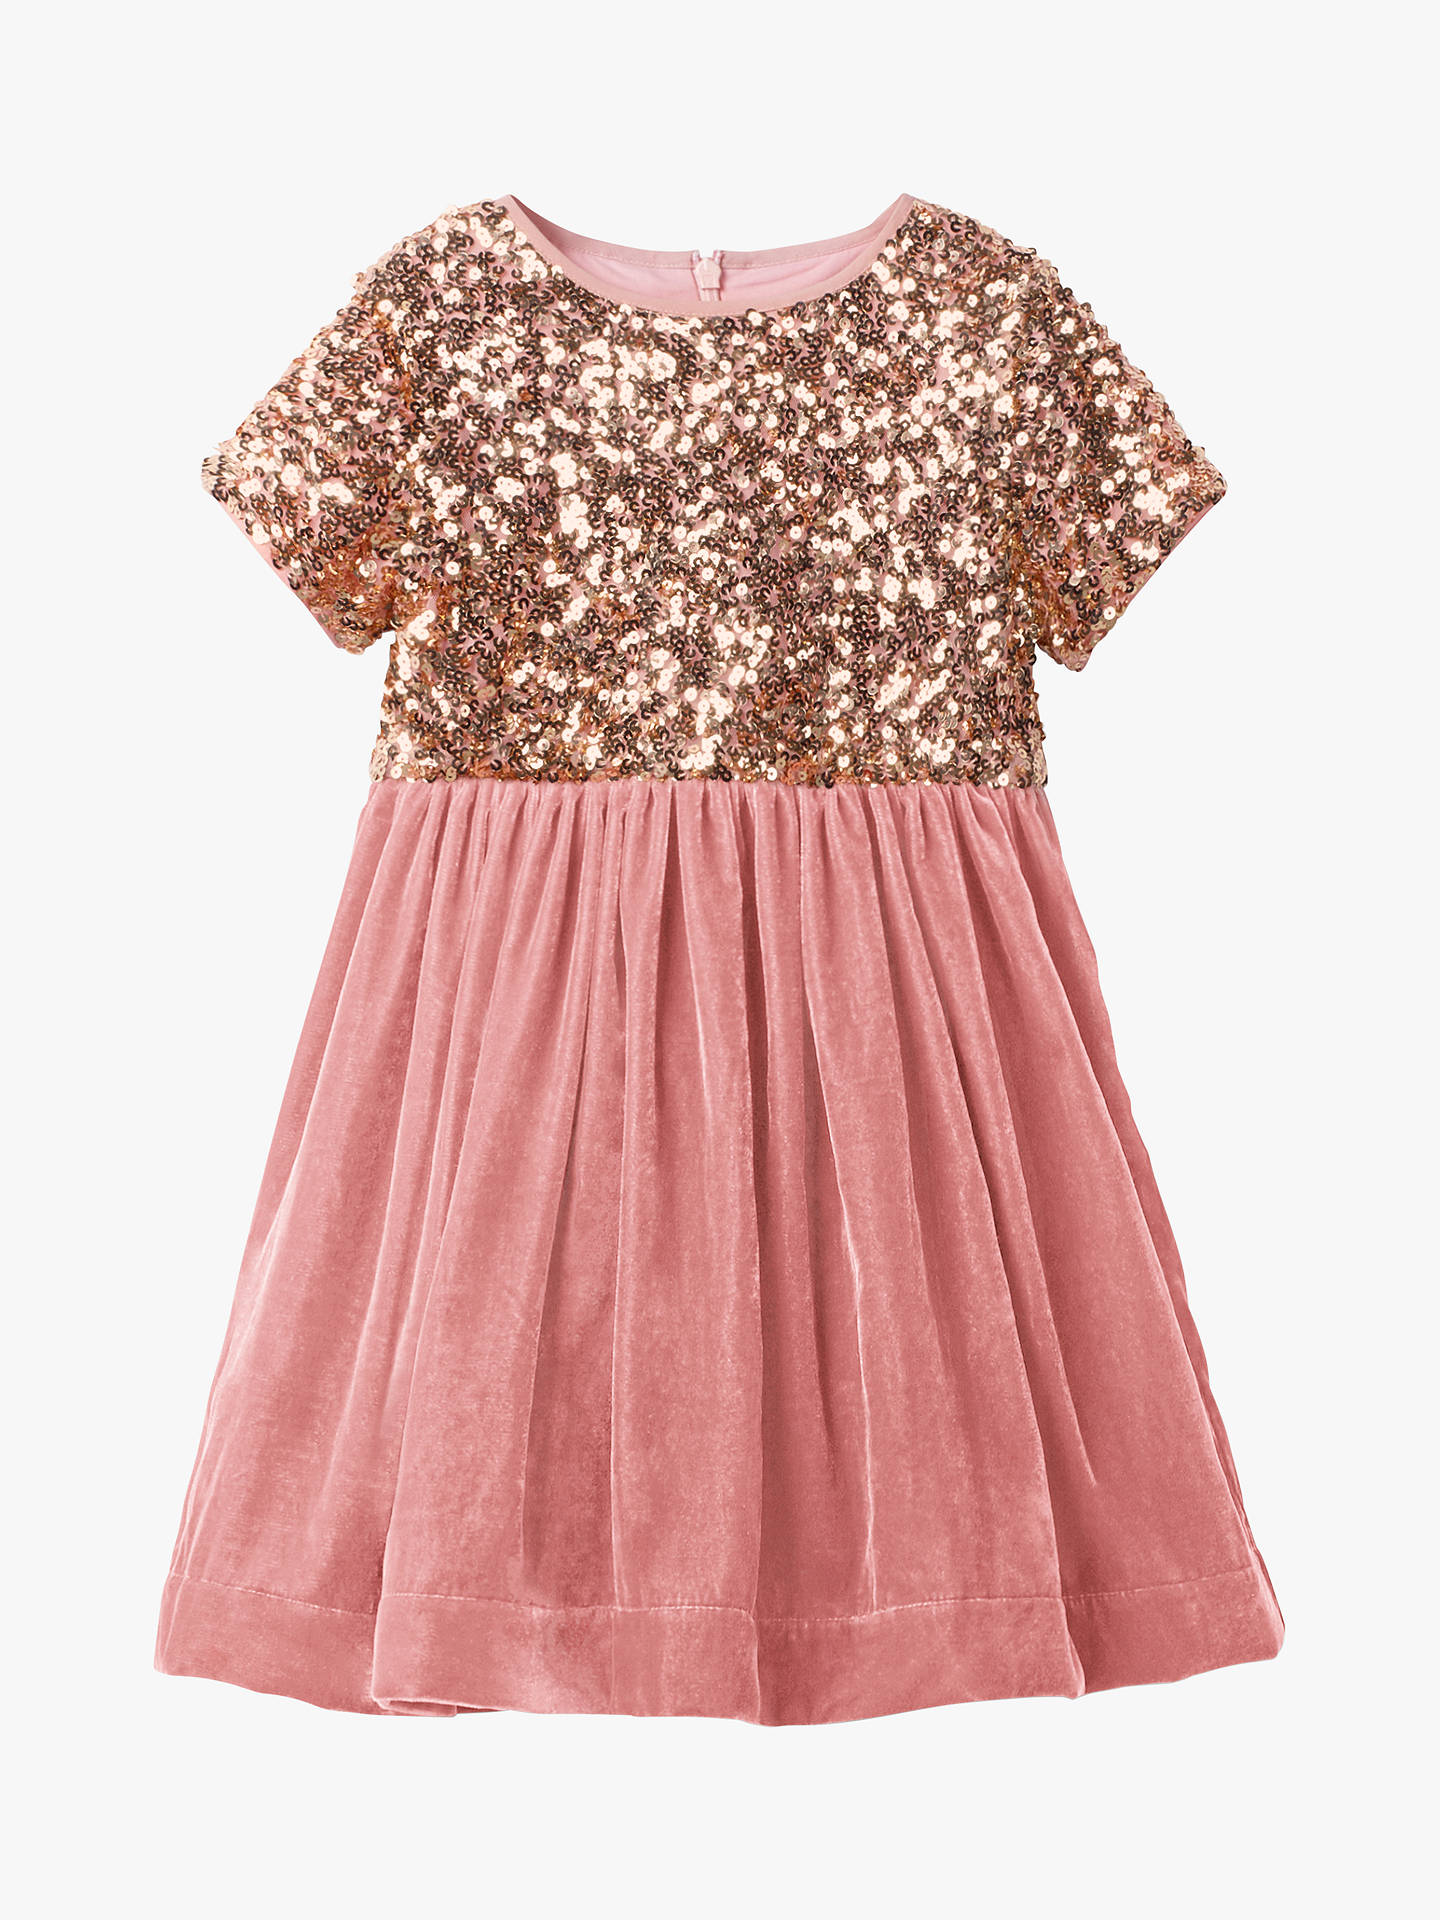 Mini Boden Girls Velvet Sequin Party Dress Vintage Pink At John